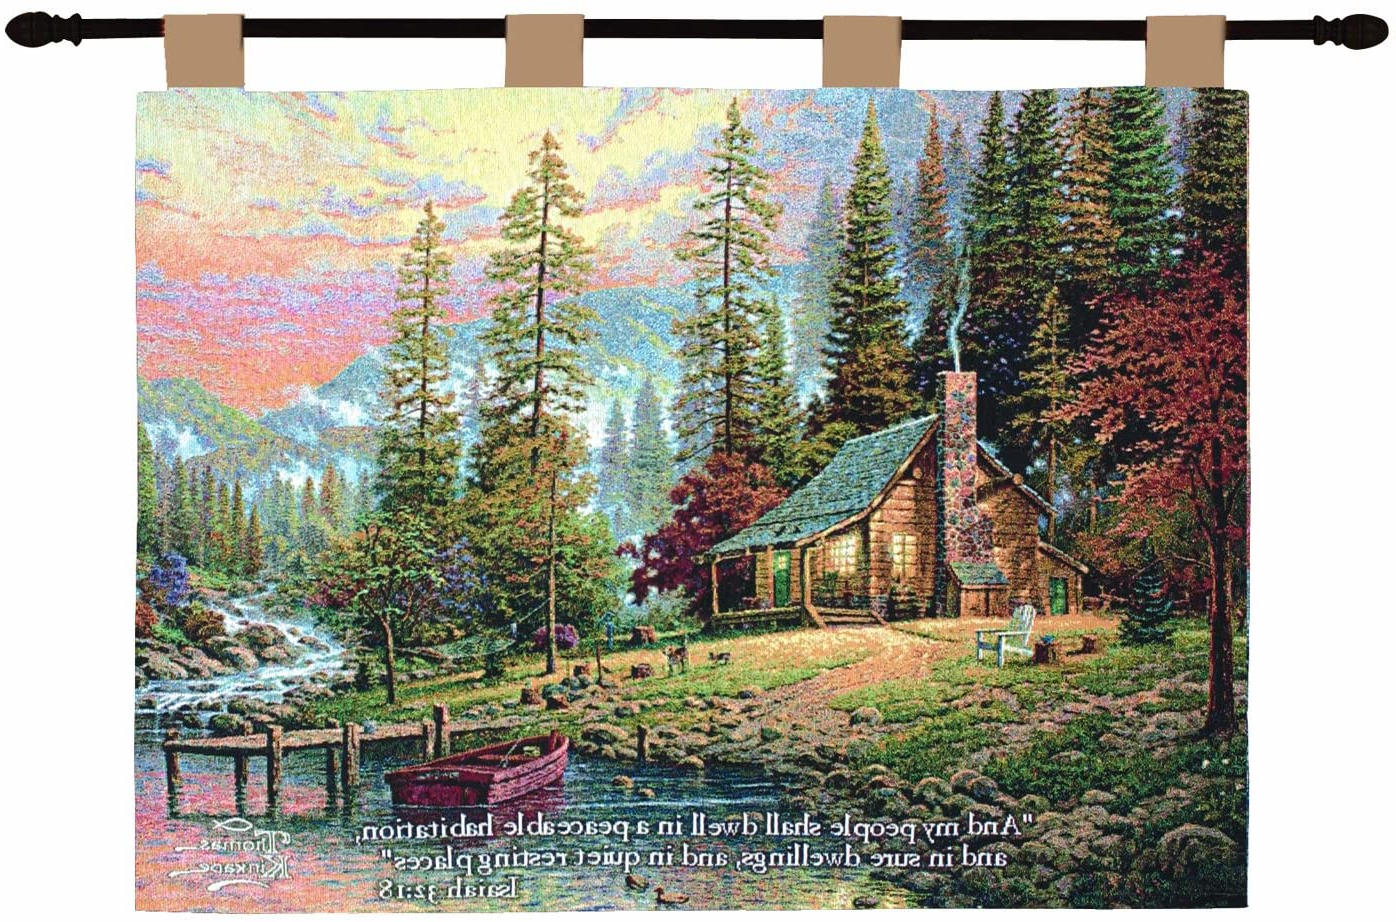 Blended Fabric Freedom Verse Tapestries And Wall Hangings For Trendy Manual Inspirational Collection 26 X 36 Inch Wall Hanging And Finial Rod, A Peaceful Retreat With Versethomas Kinkade (View 12 of 20)